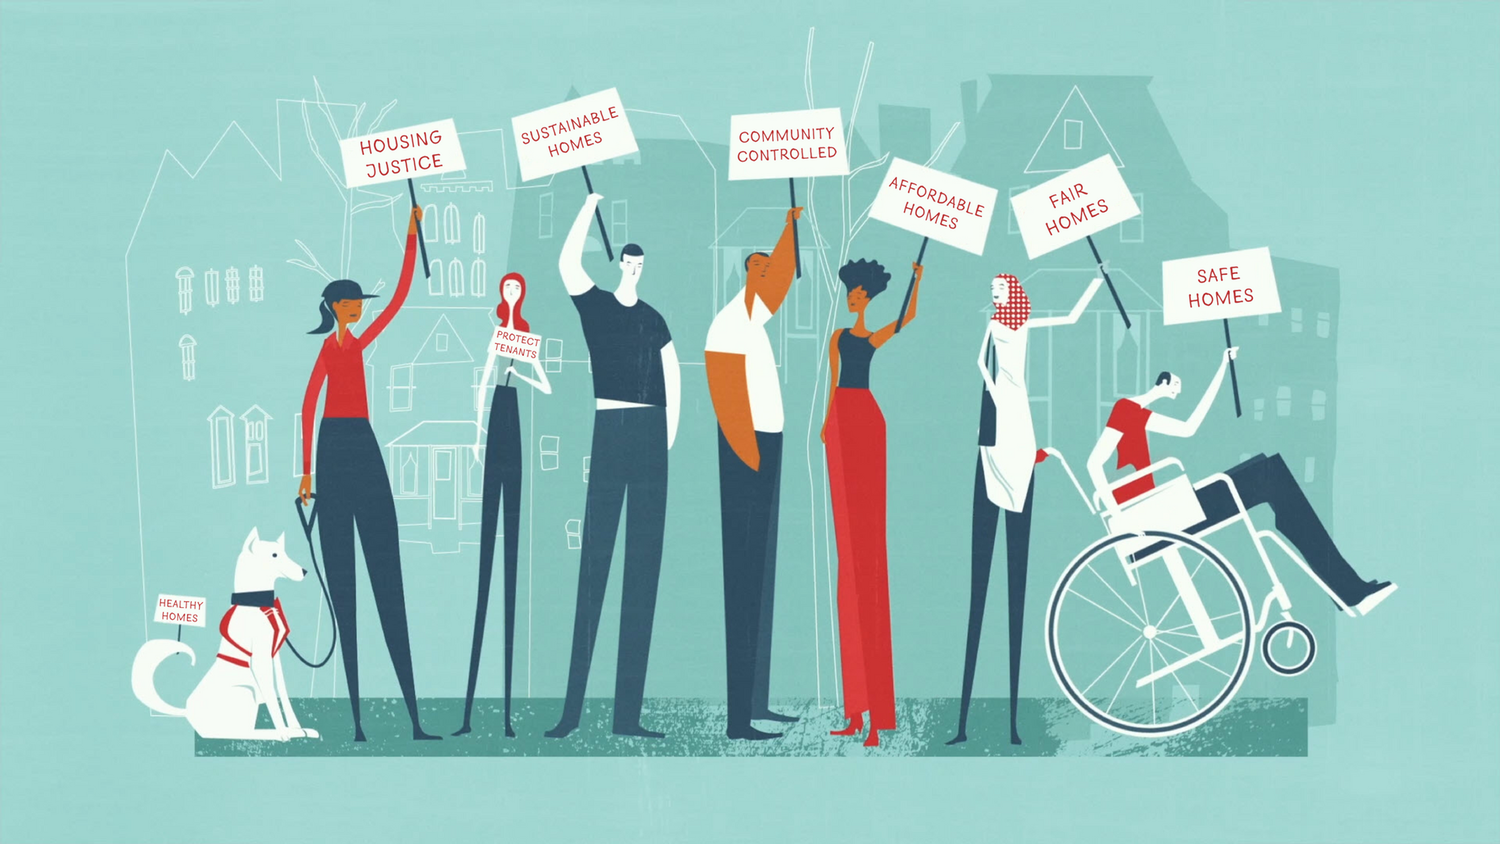 A graphic illustration of seven people and a dog holding signs promoting social justice